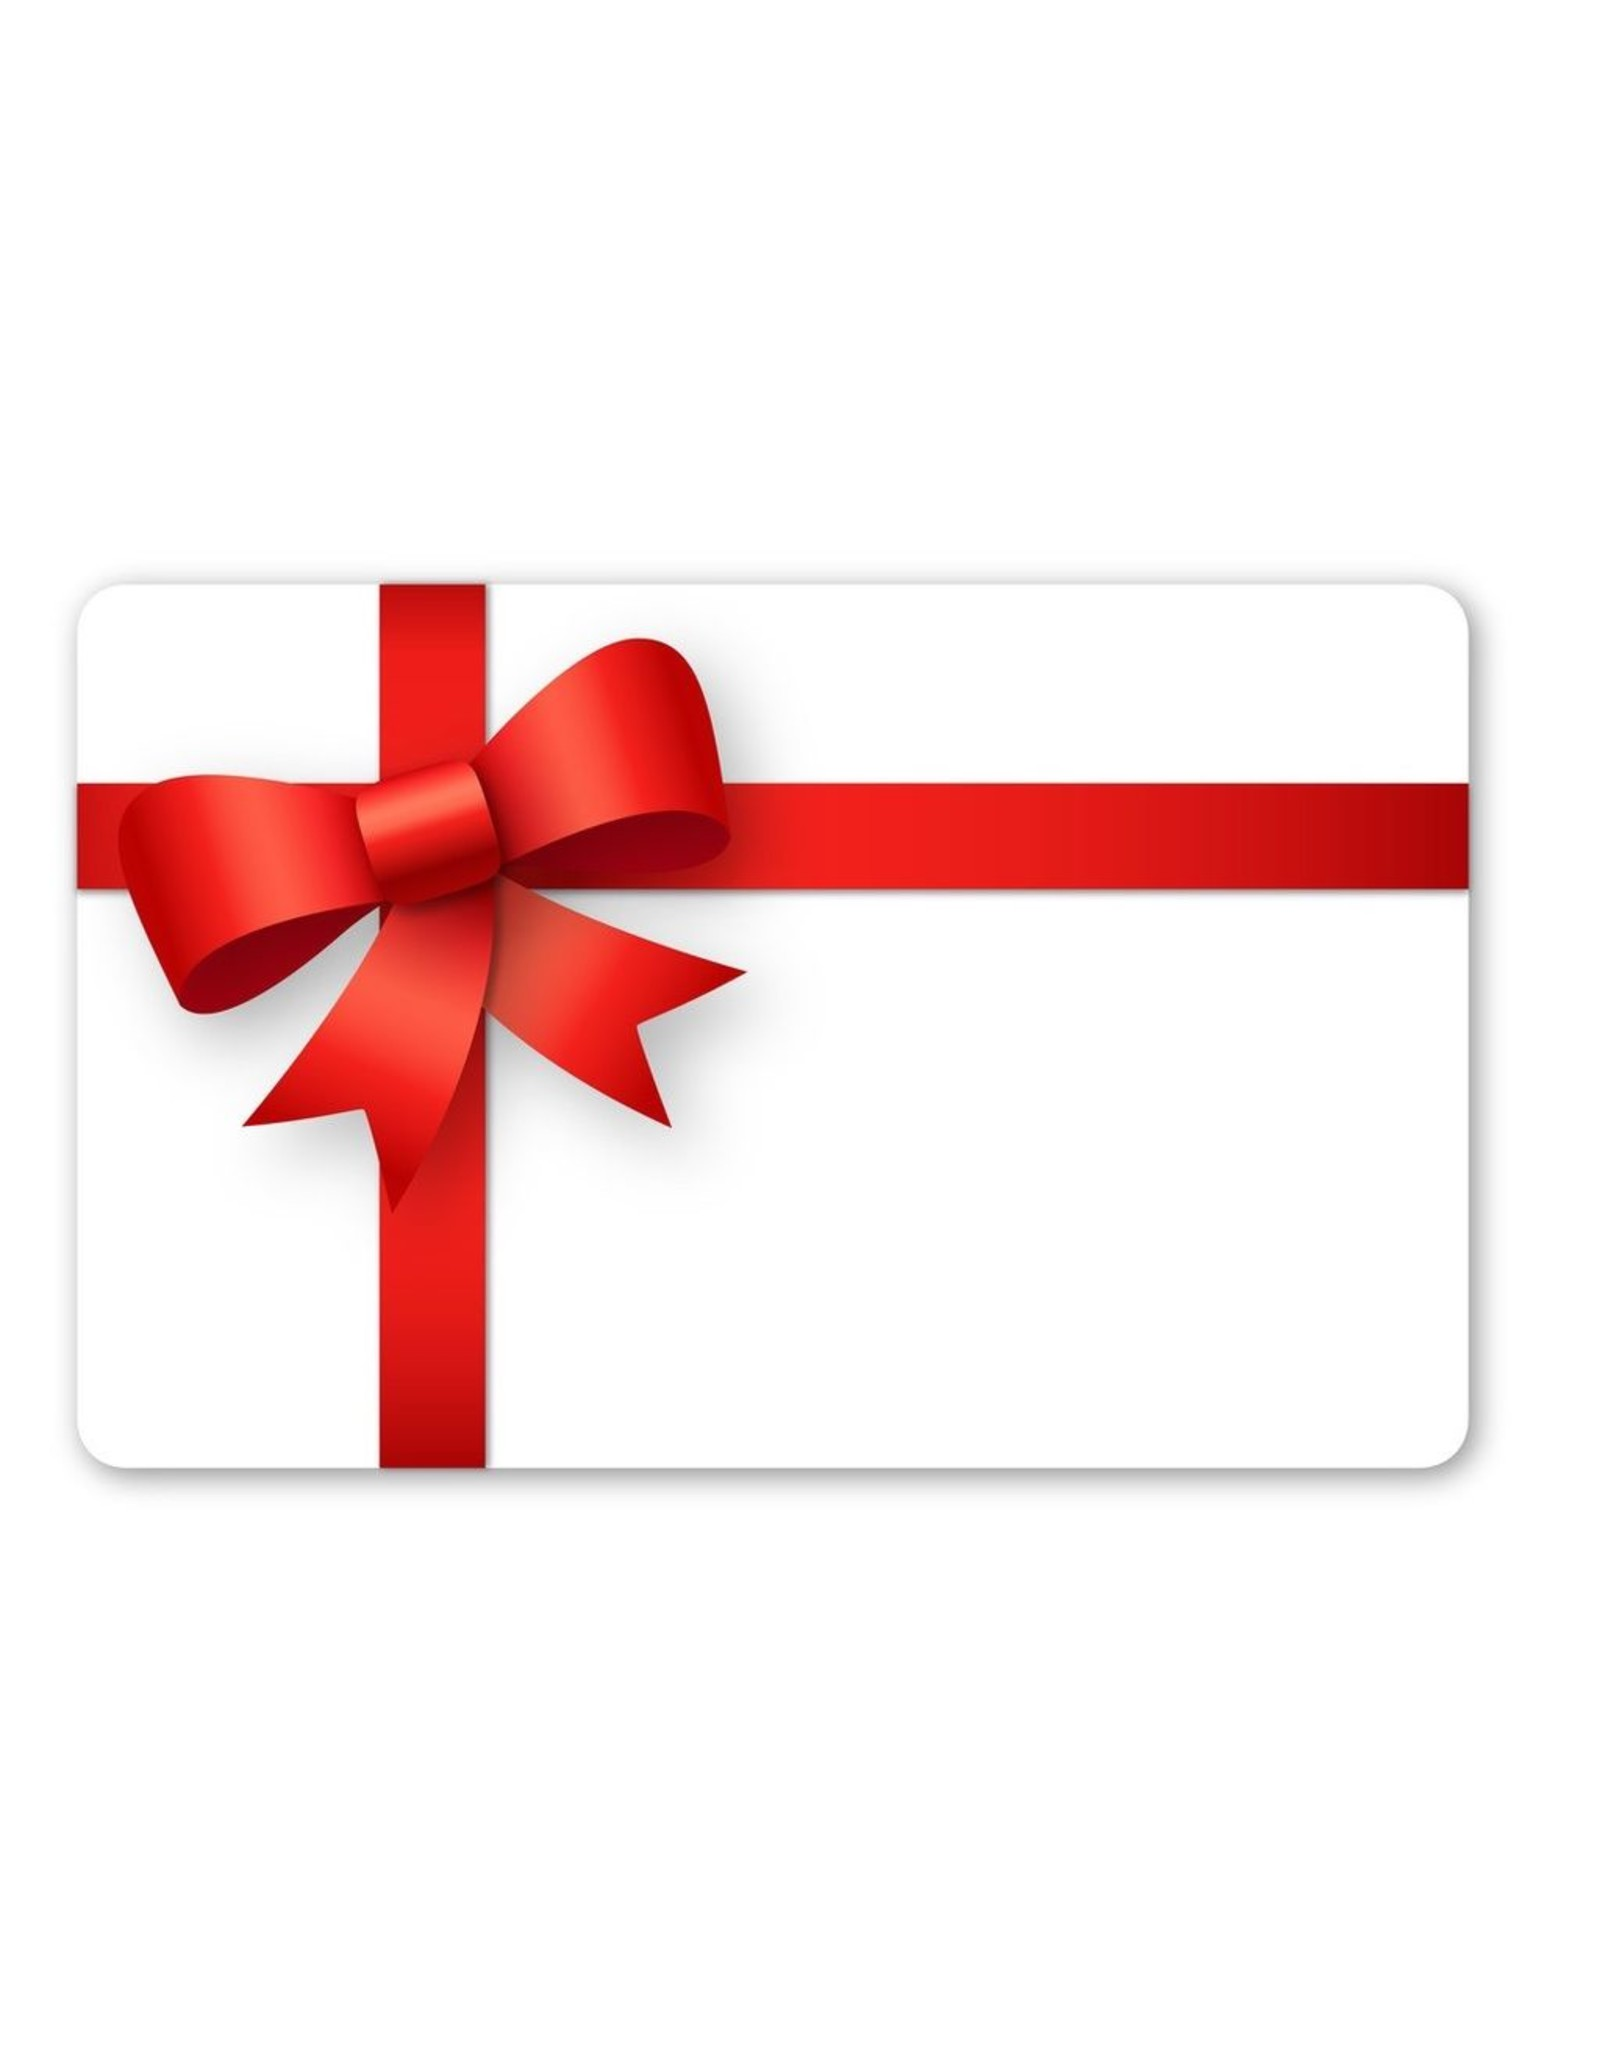 Misc. WEB $100.00 TRY WINE Gift Card (FREE SHIPPING)